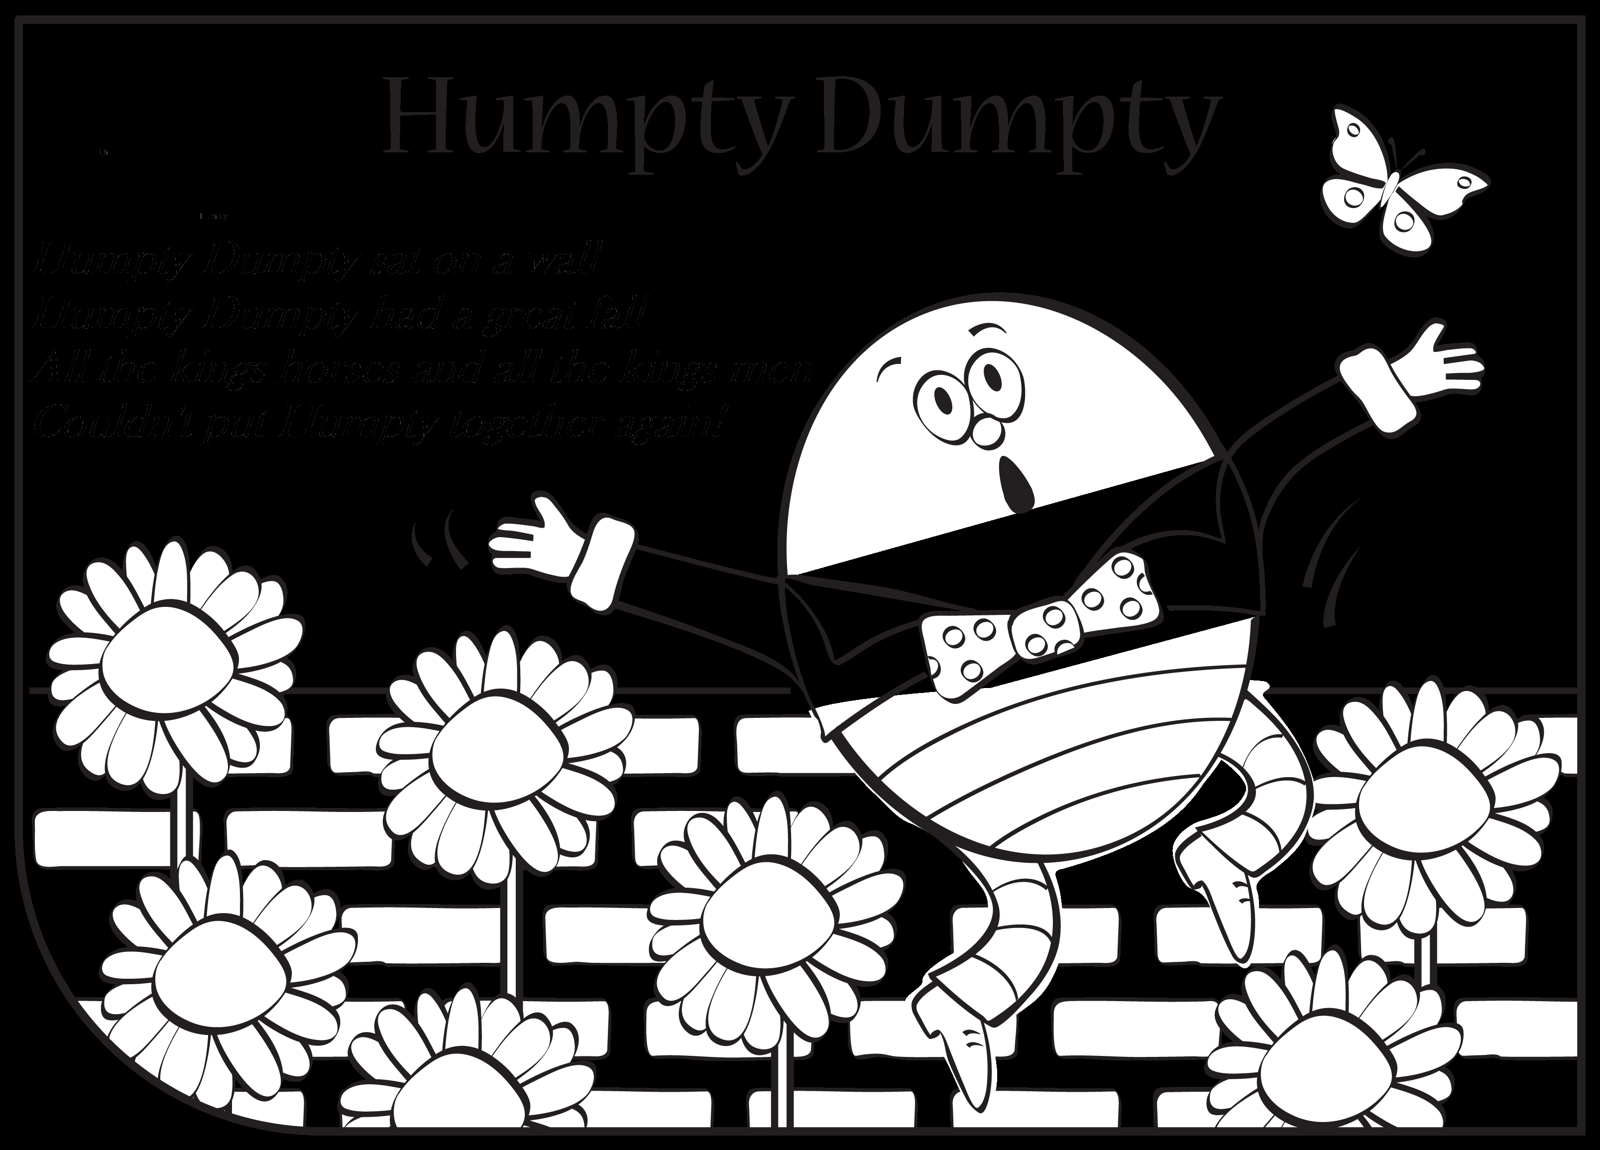 Humpty Dumpty Coloring Page - Humpty Dumpty Coloring Pages Coloring Home